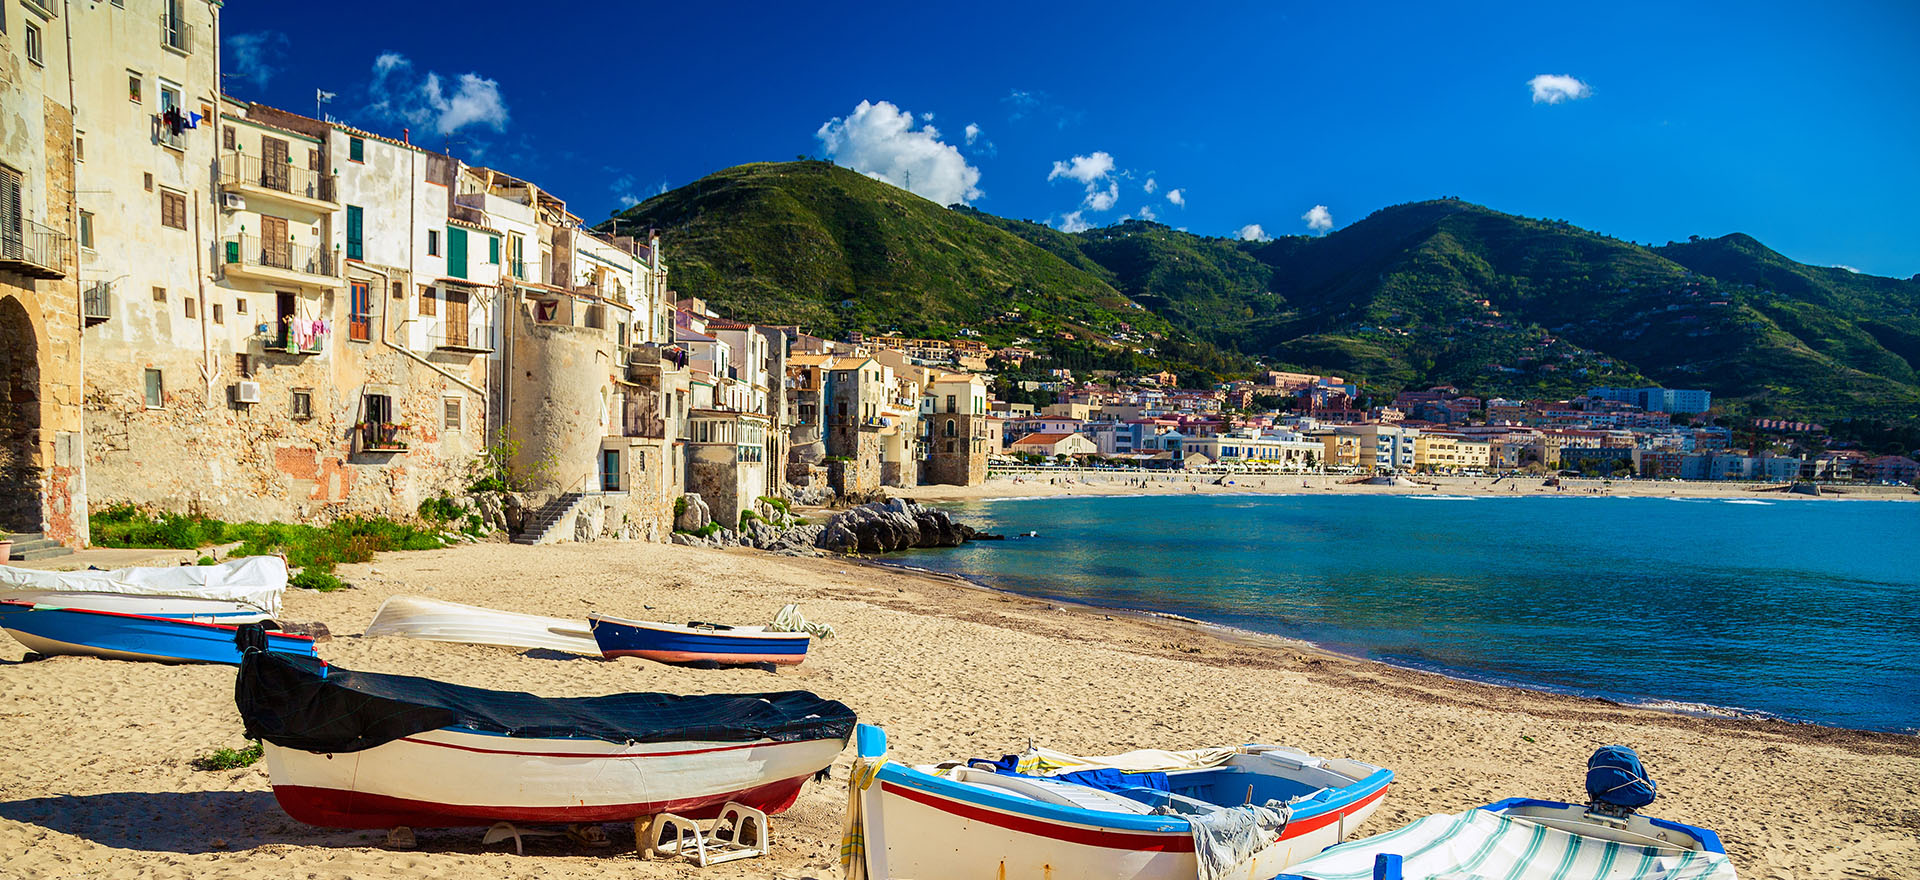 Sicily beach | Palermo | Italy| Mediterranean Tours and Cruises